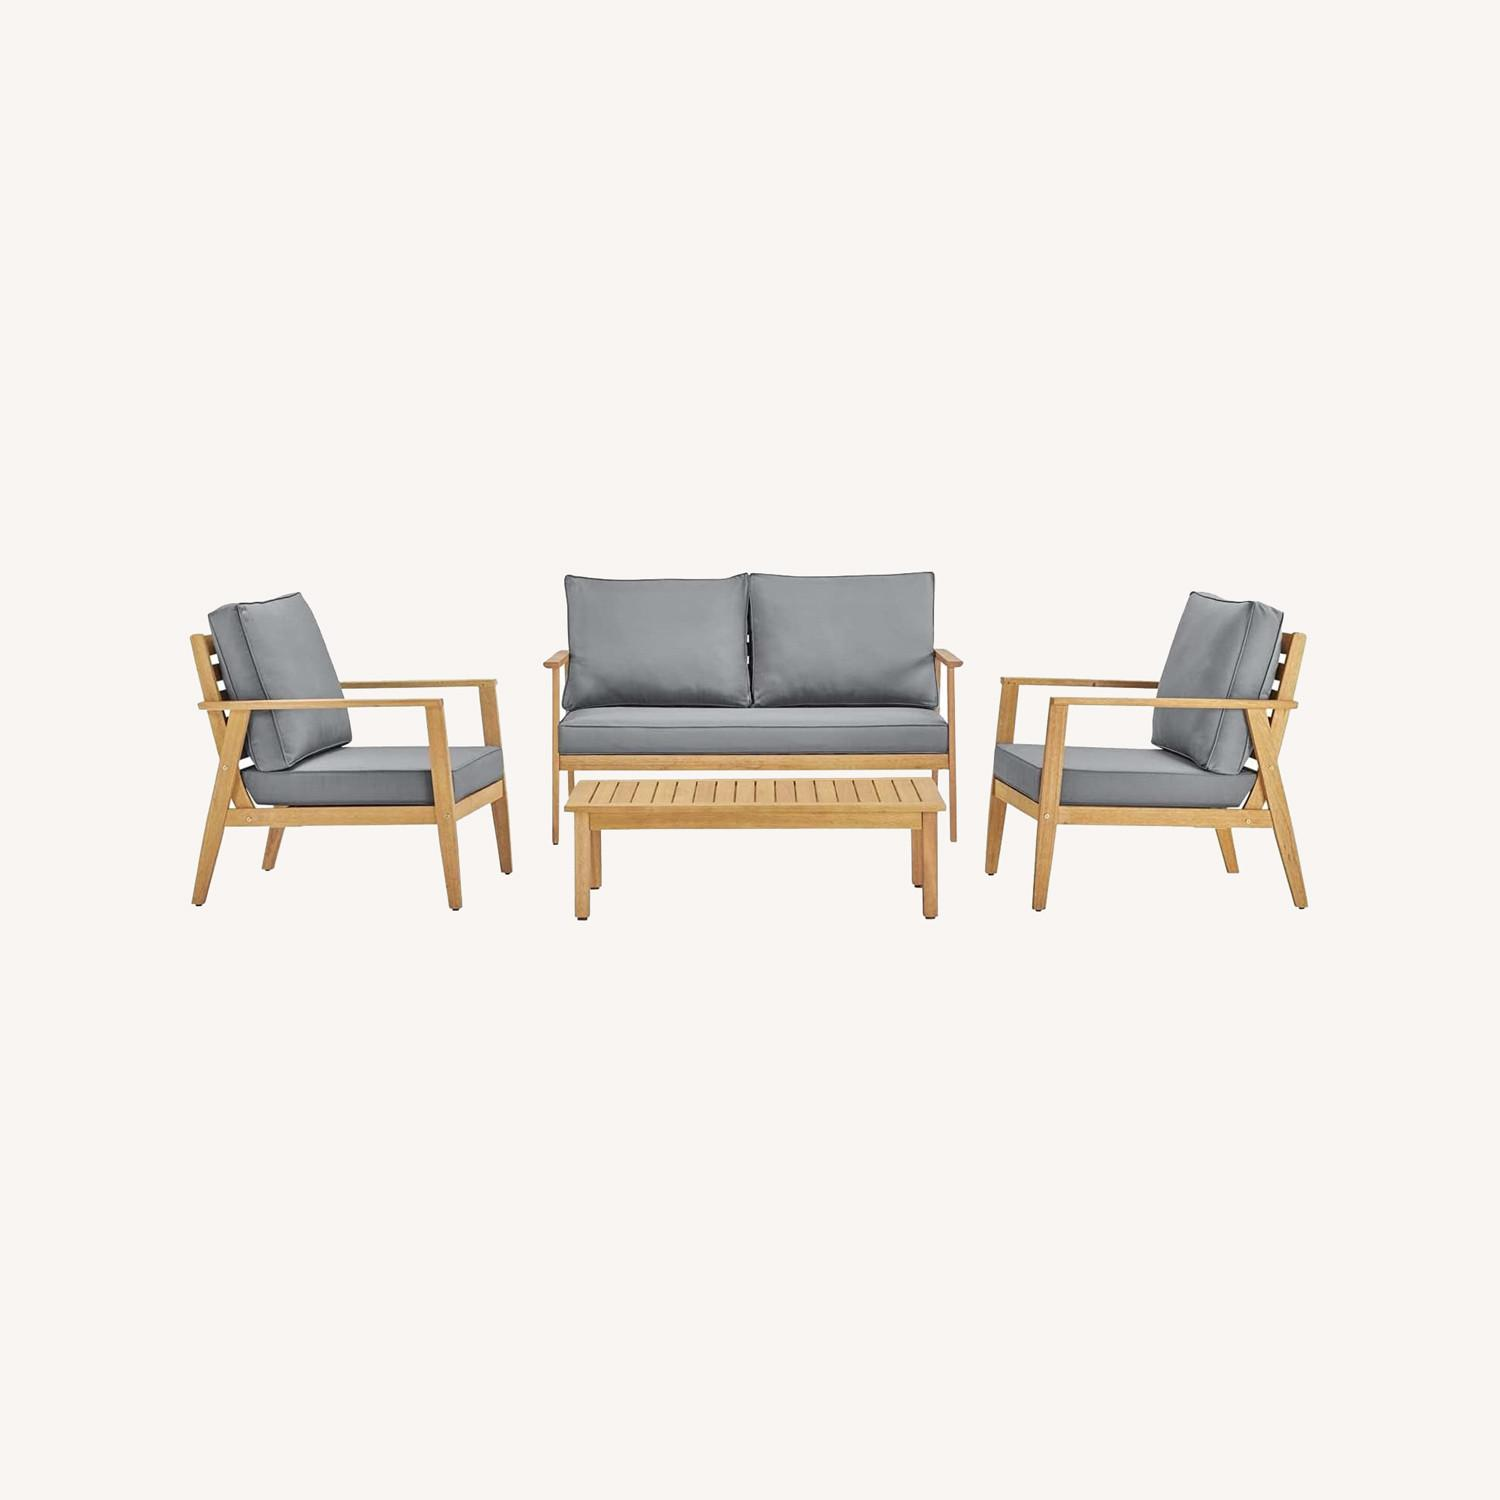 4-Piece Outdoor Patio Set In Natural Gray Wood - image-4